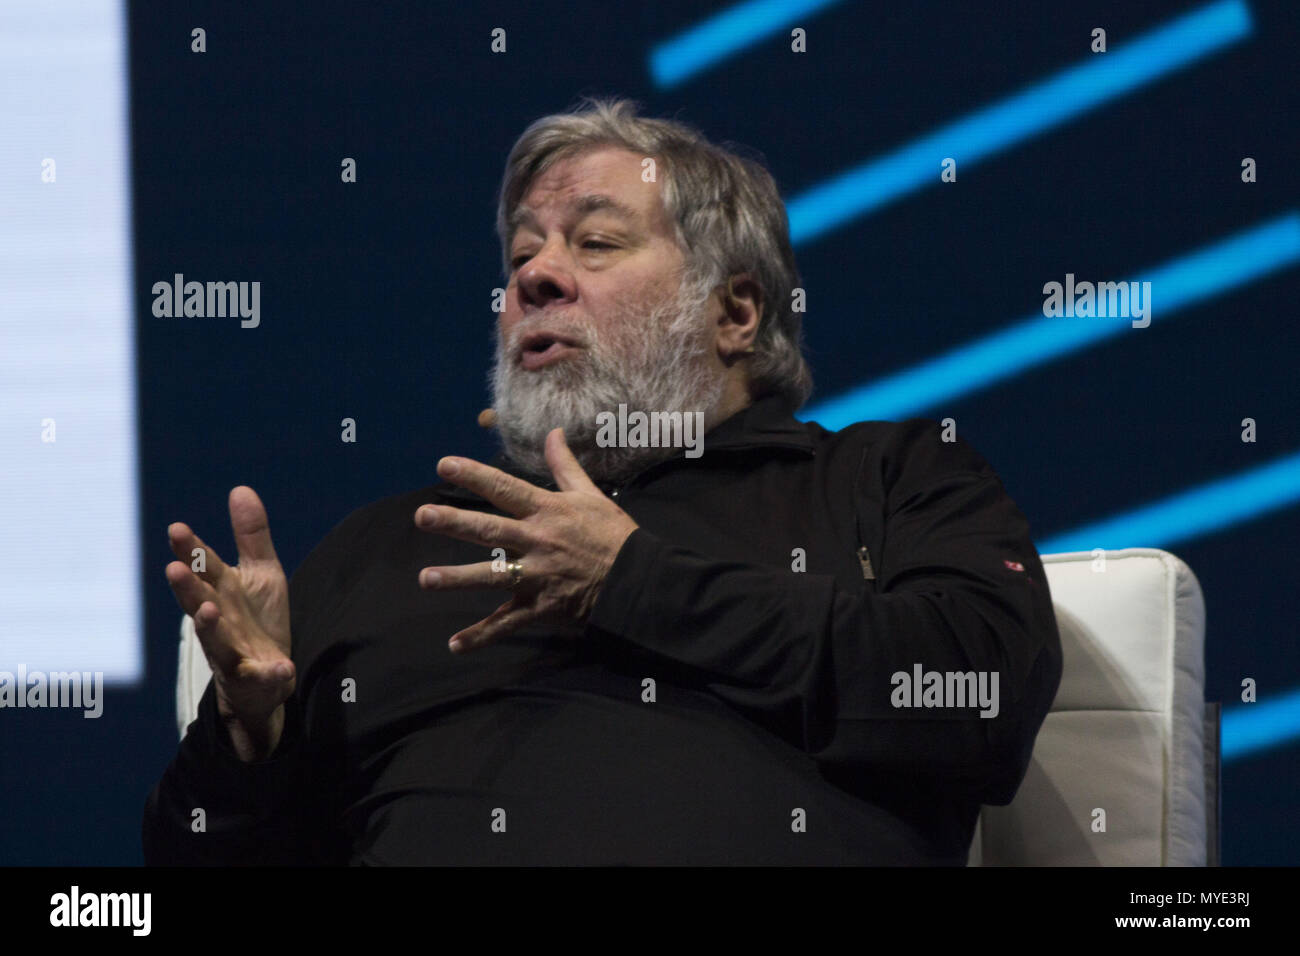 Bogota, Colombia. June 6, 2018 - The founder of technology giant Apple, Steve Wozniak speaks in the second day in the World Of Business Ideas in Bogotá, Colombia Credit: Daniel AndréS GarzóN Herazo/ZUMA Wire/Alamy Live News - Stock Image